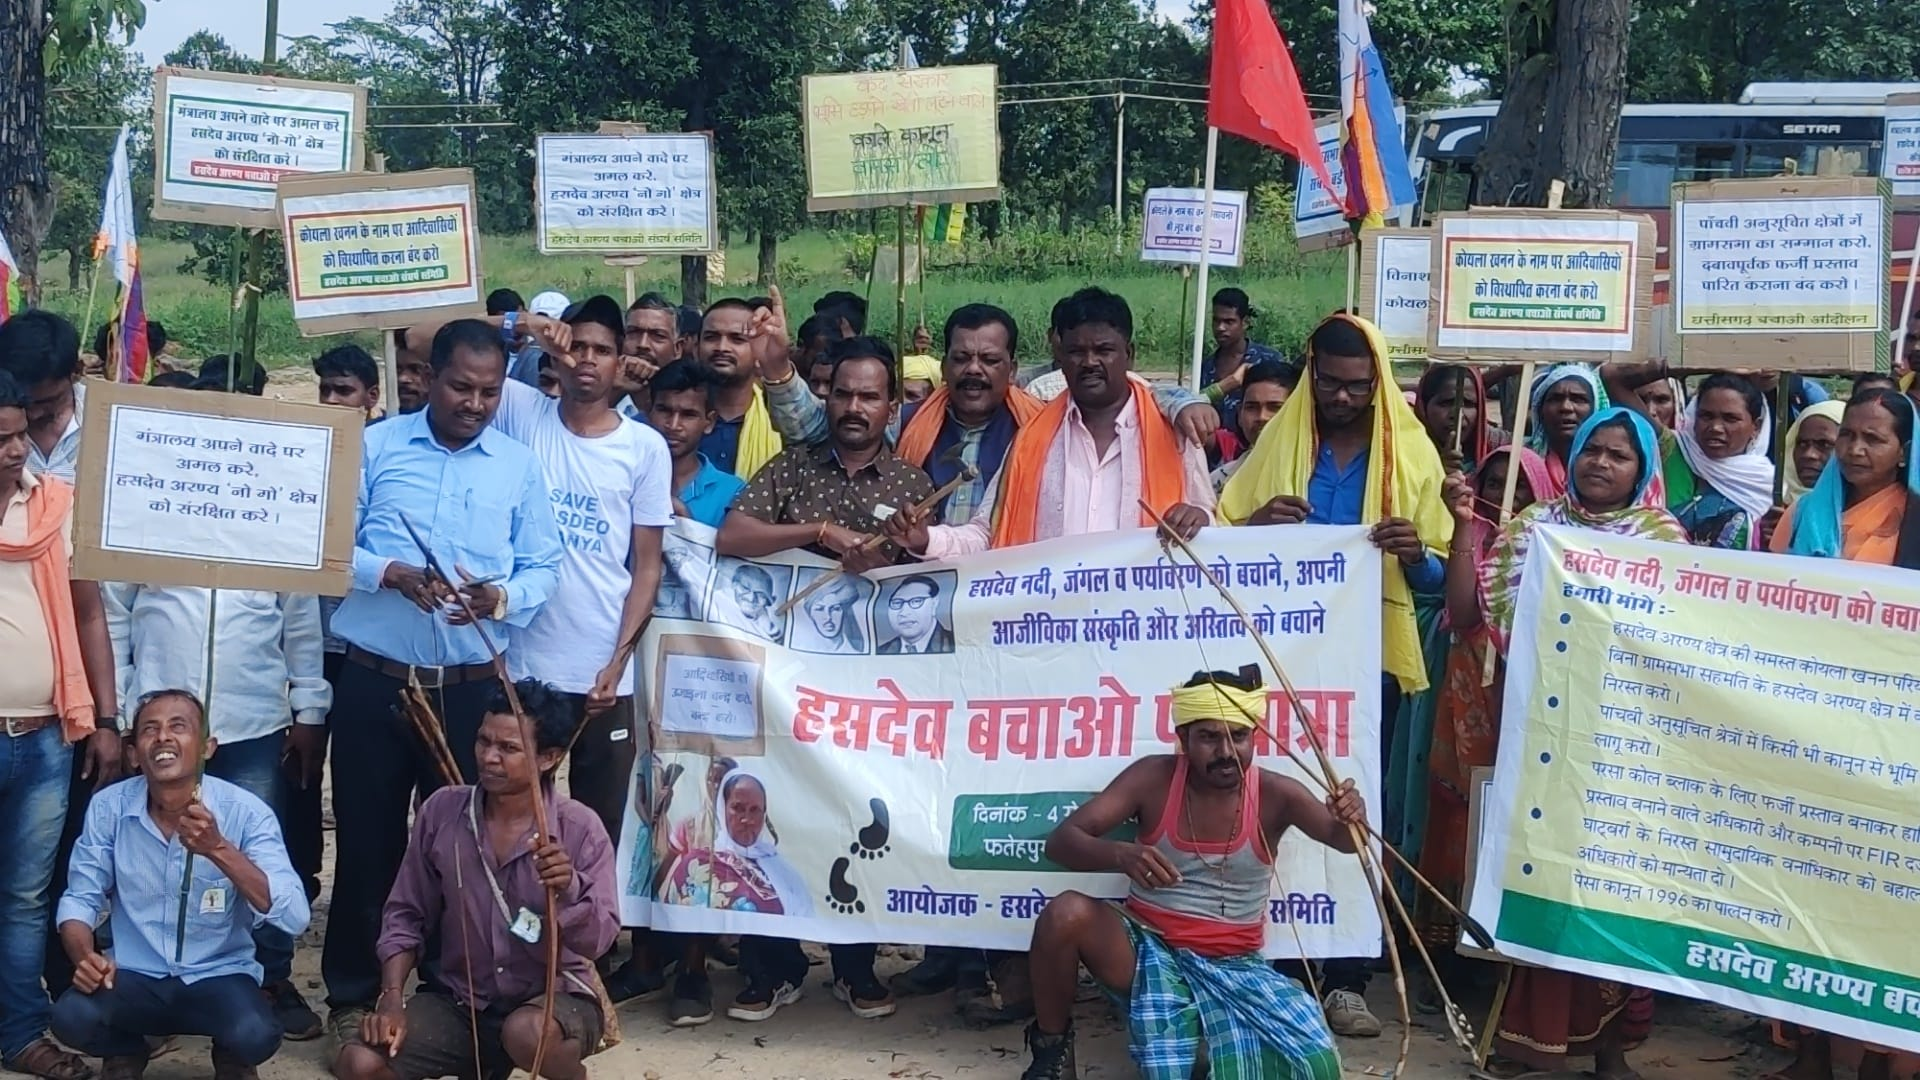 Participants in the 300-km march to save the Hasdeo forests in India. Photo HABSS